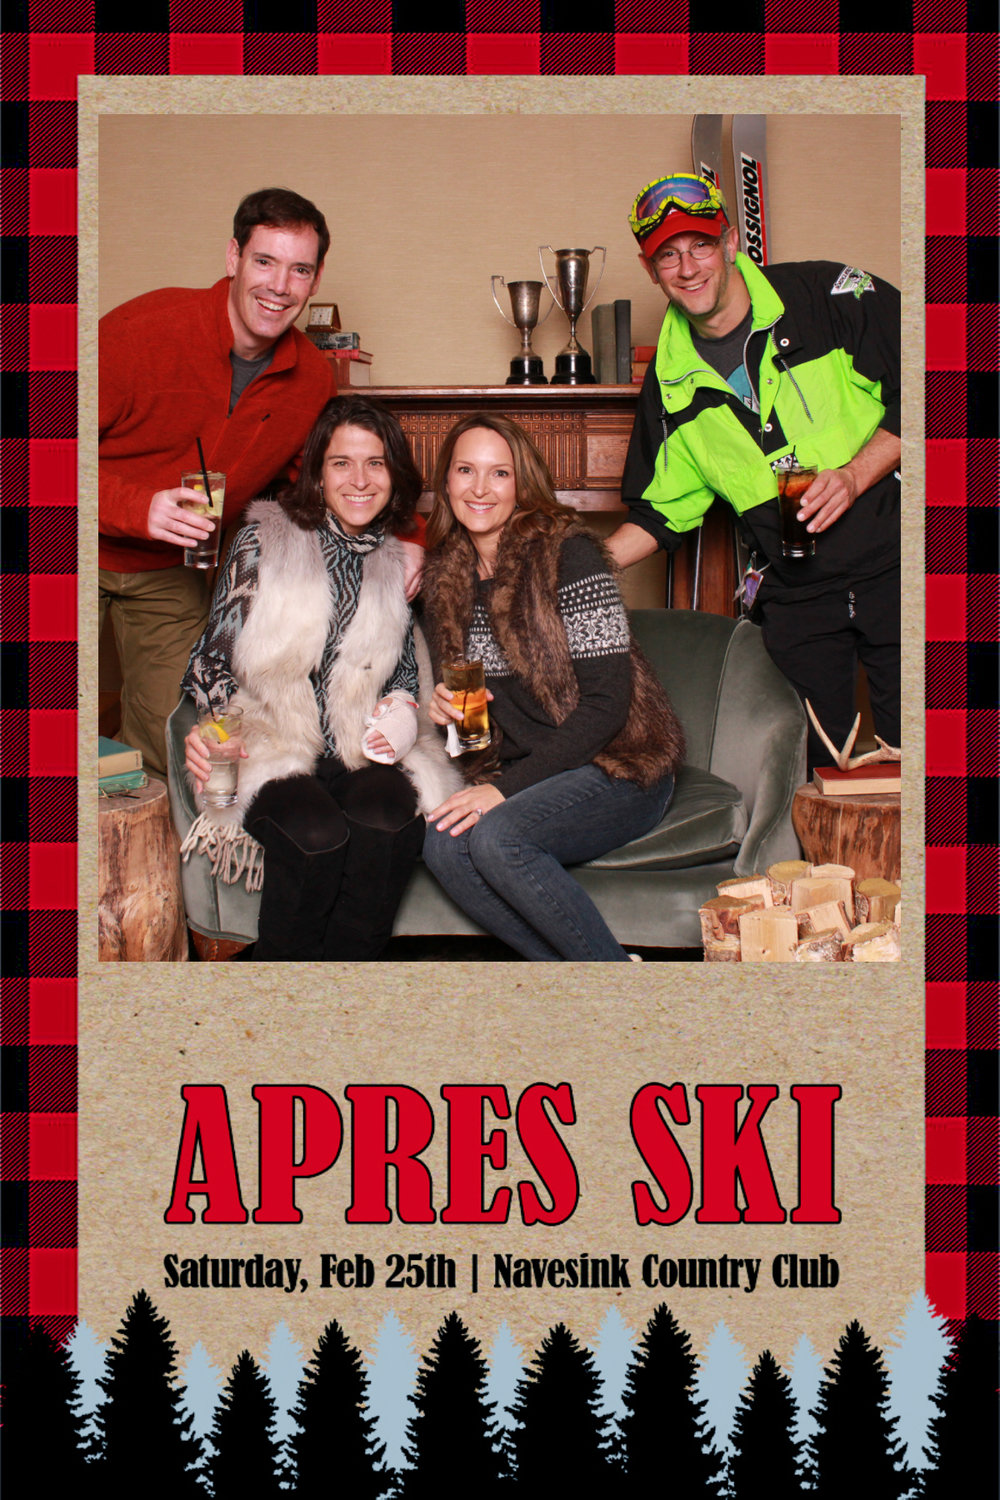 APRES SKI AT The NAVESINK COUNTRY CLUB February 25, 2017